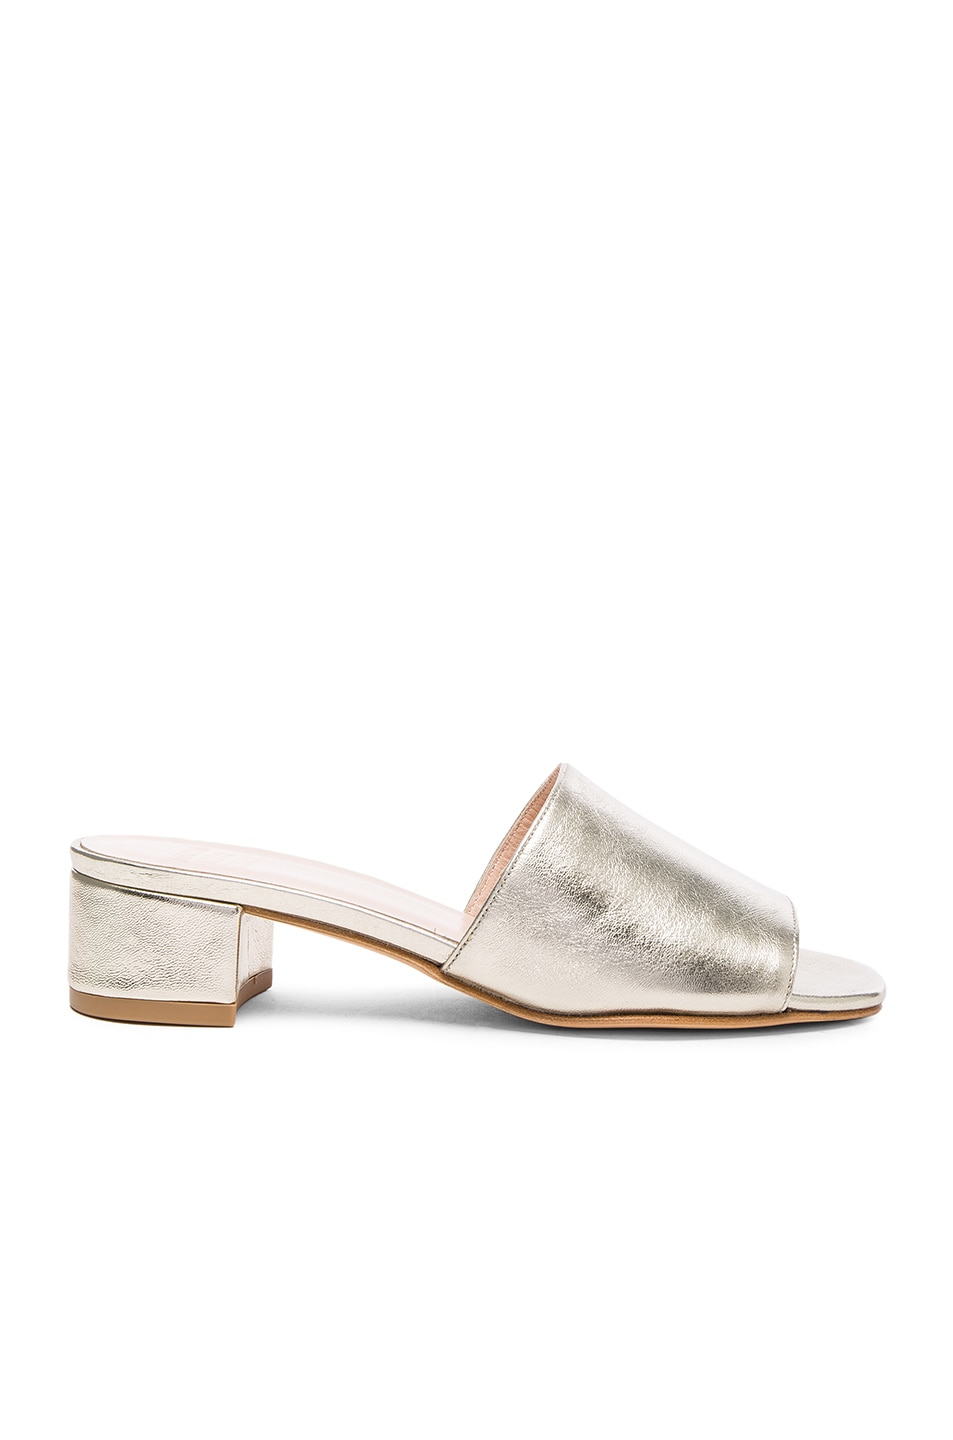 Image 1 of Maryam Nassir Zadeh Leather Sophie Slides in Prosecco Metallic